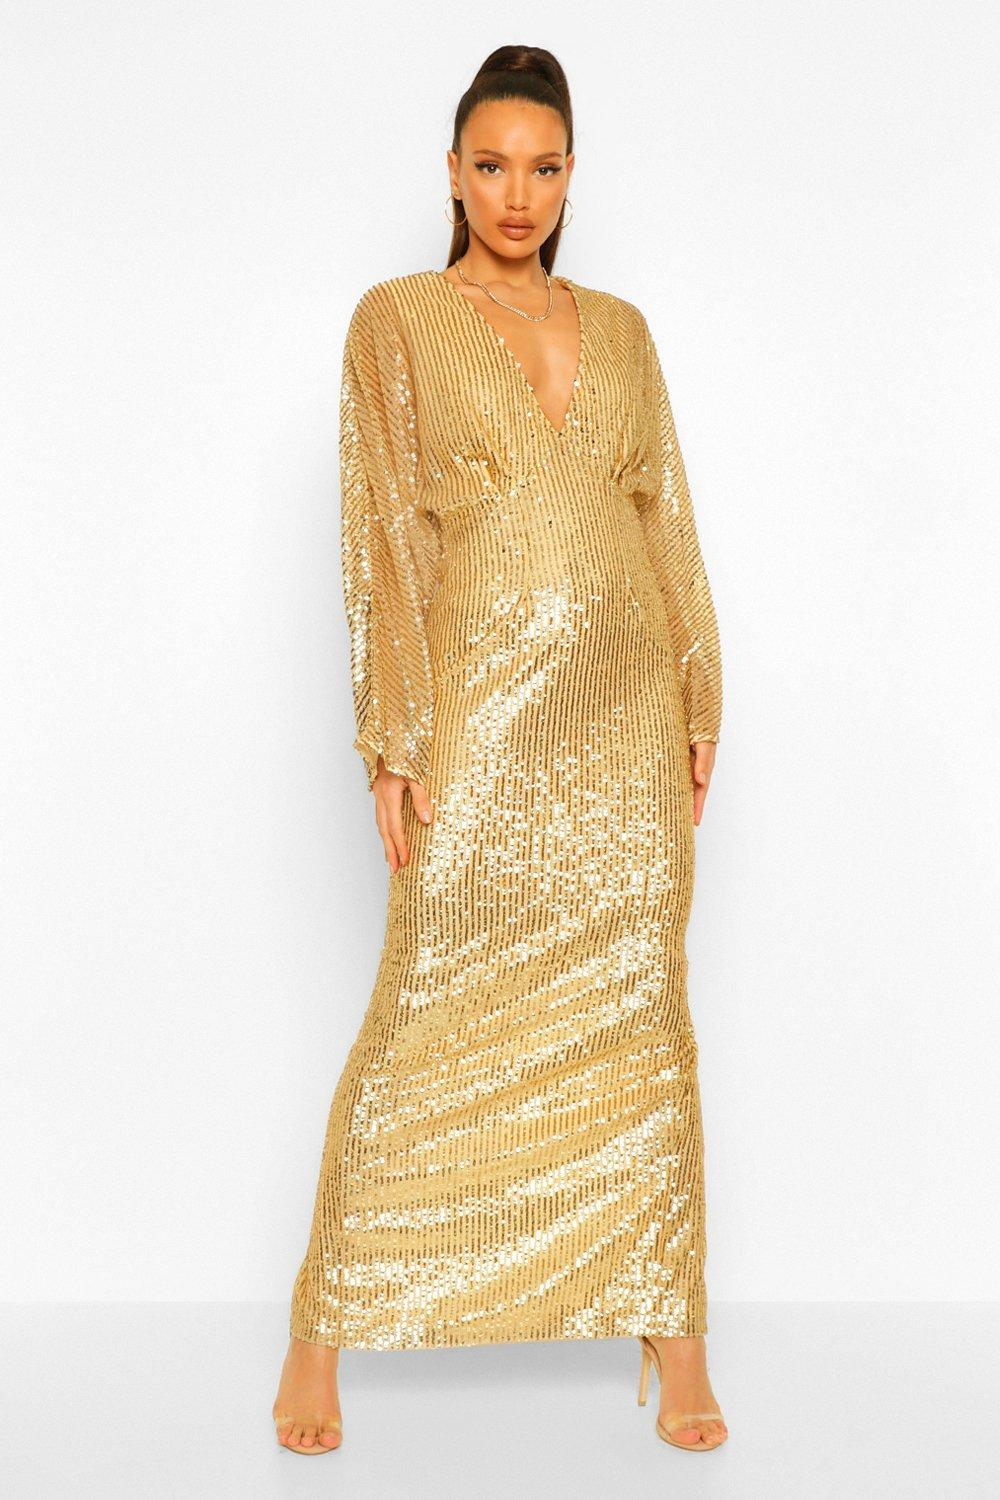 70s Prom, Formal, Evening, Party Dresses Womens Tall Sequin Batwing Sleeve Maxi Dress - Metallics - 14 $70.00 AT vintagedancer.com